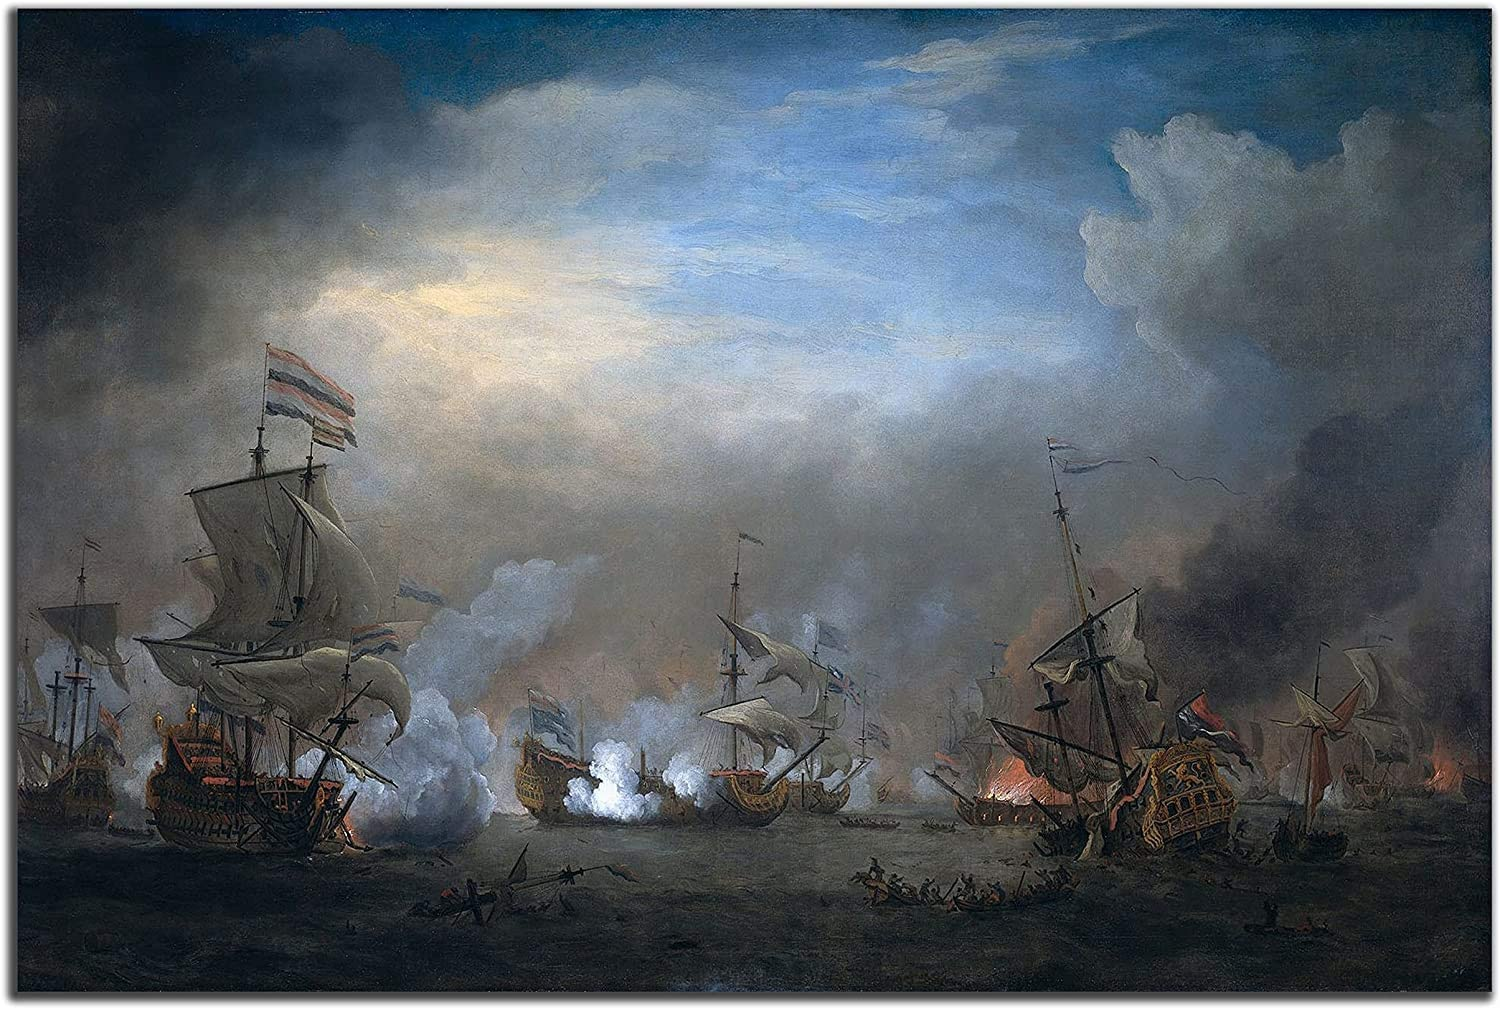 HOTSPEED Oil Paintings Poster 1 Piece Historical Ship Naval Battle Prints Picture Landscape Wall Decor Paintings on Canvas Framed to Hang for Home Decor Bedroom Decor 16x24inch(unframed)